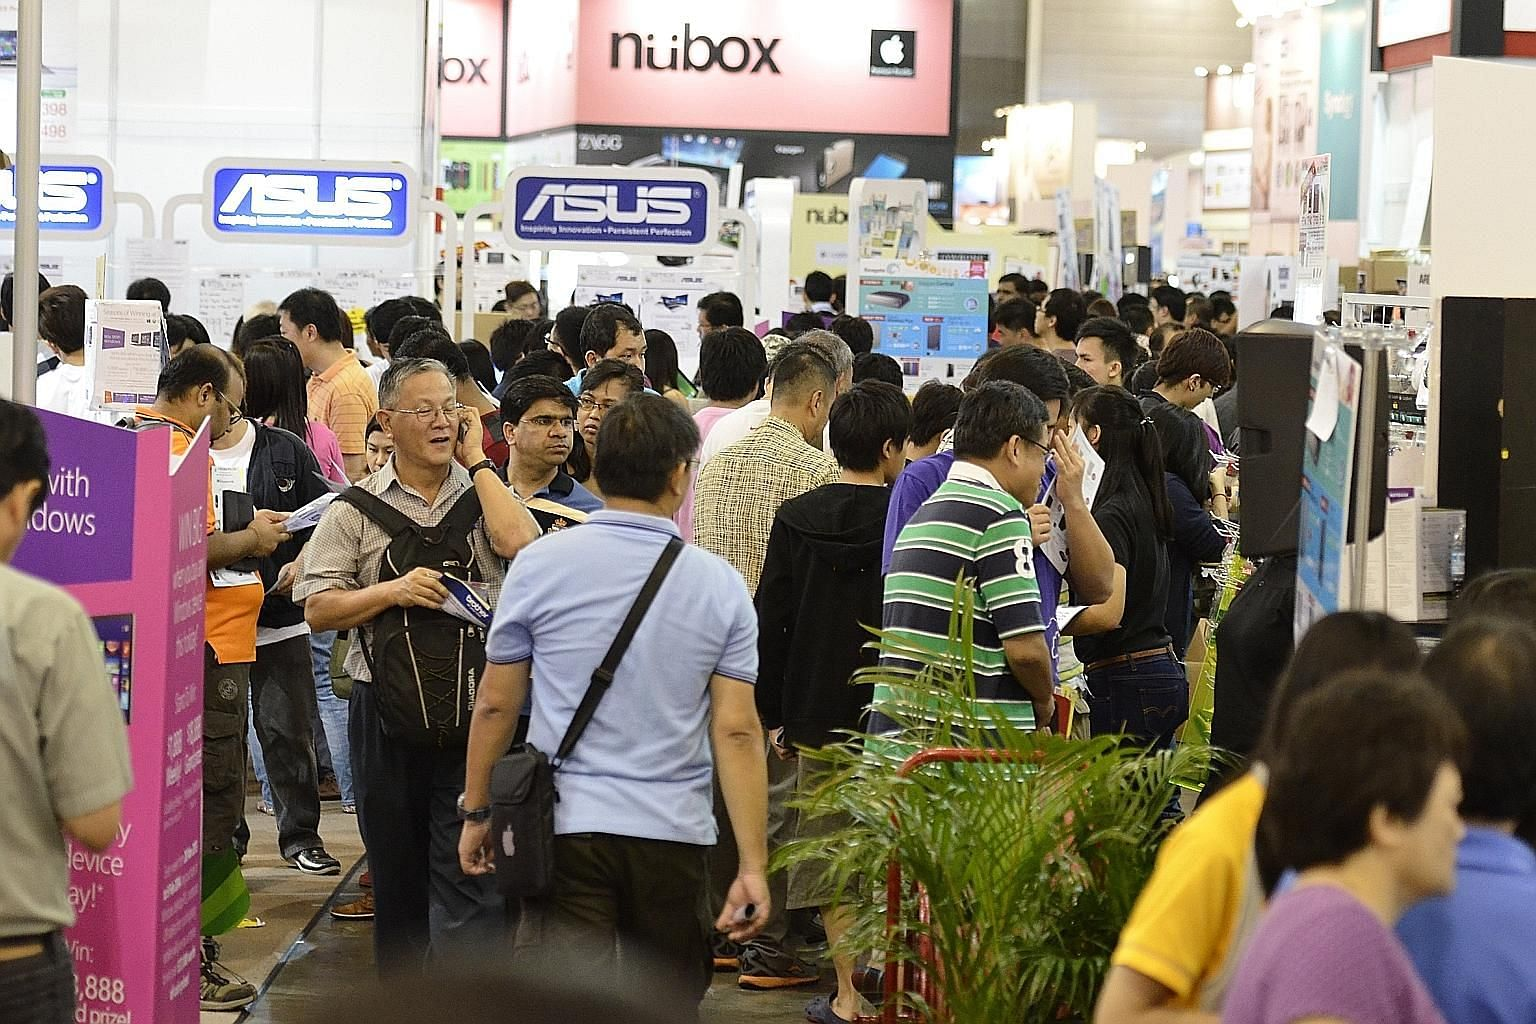 More than 80 exhibitors representing over 300 brands, including Asus, Microsoft and Lenovo, will participate in the show to satisfy your tech cravings.